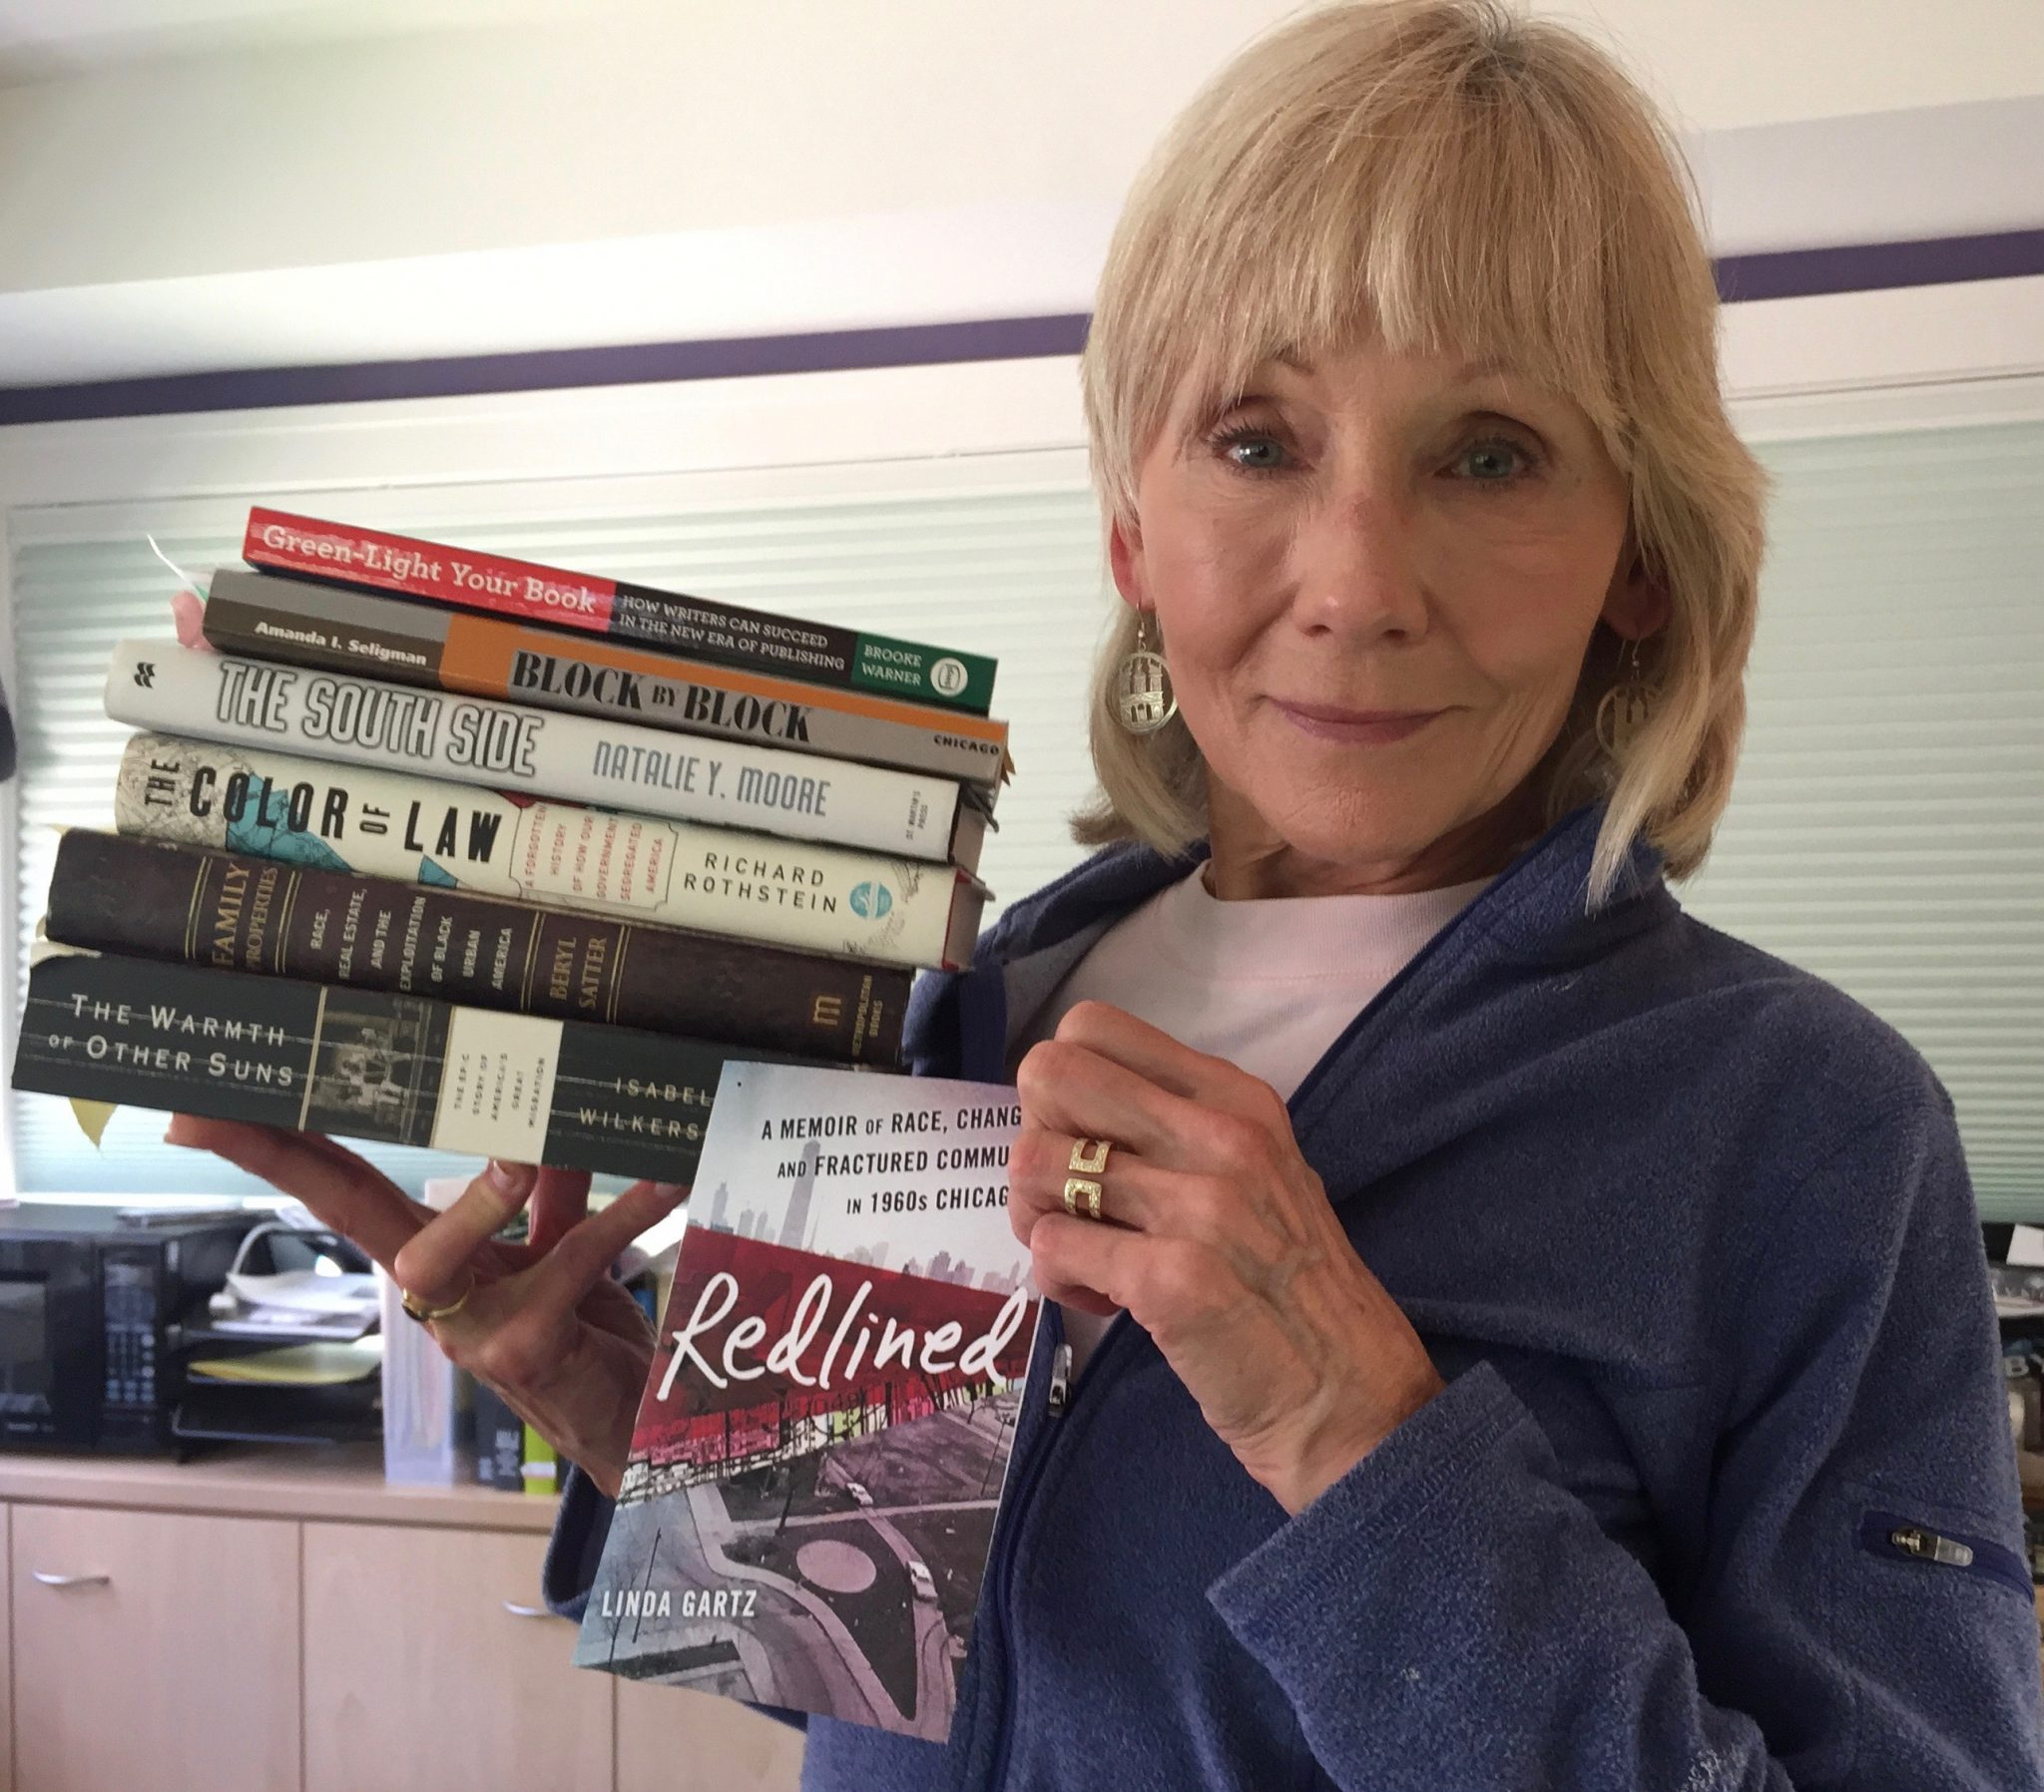 Author Linda Gartz holds many books she used to do research for her book, Redlined: A Memoir of Race, Change, and Fractured Community in 1960s Chicago.